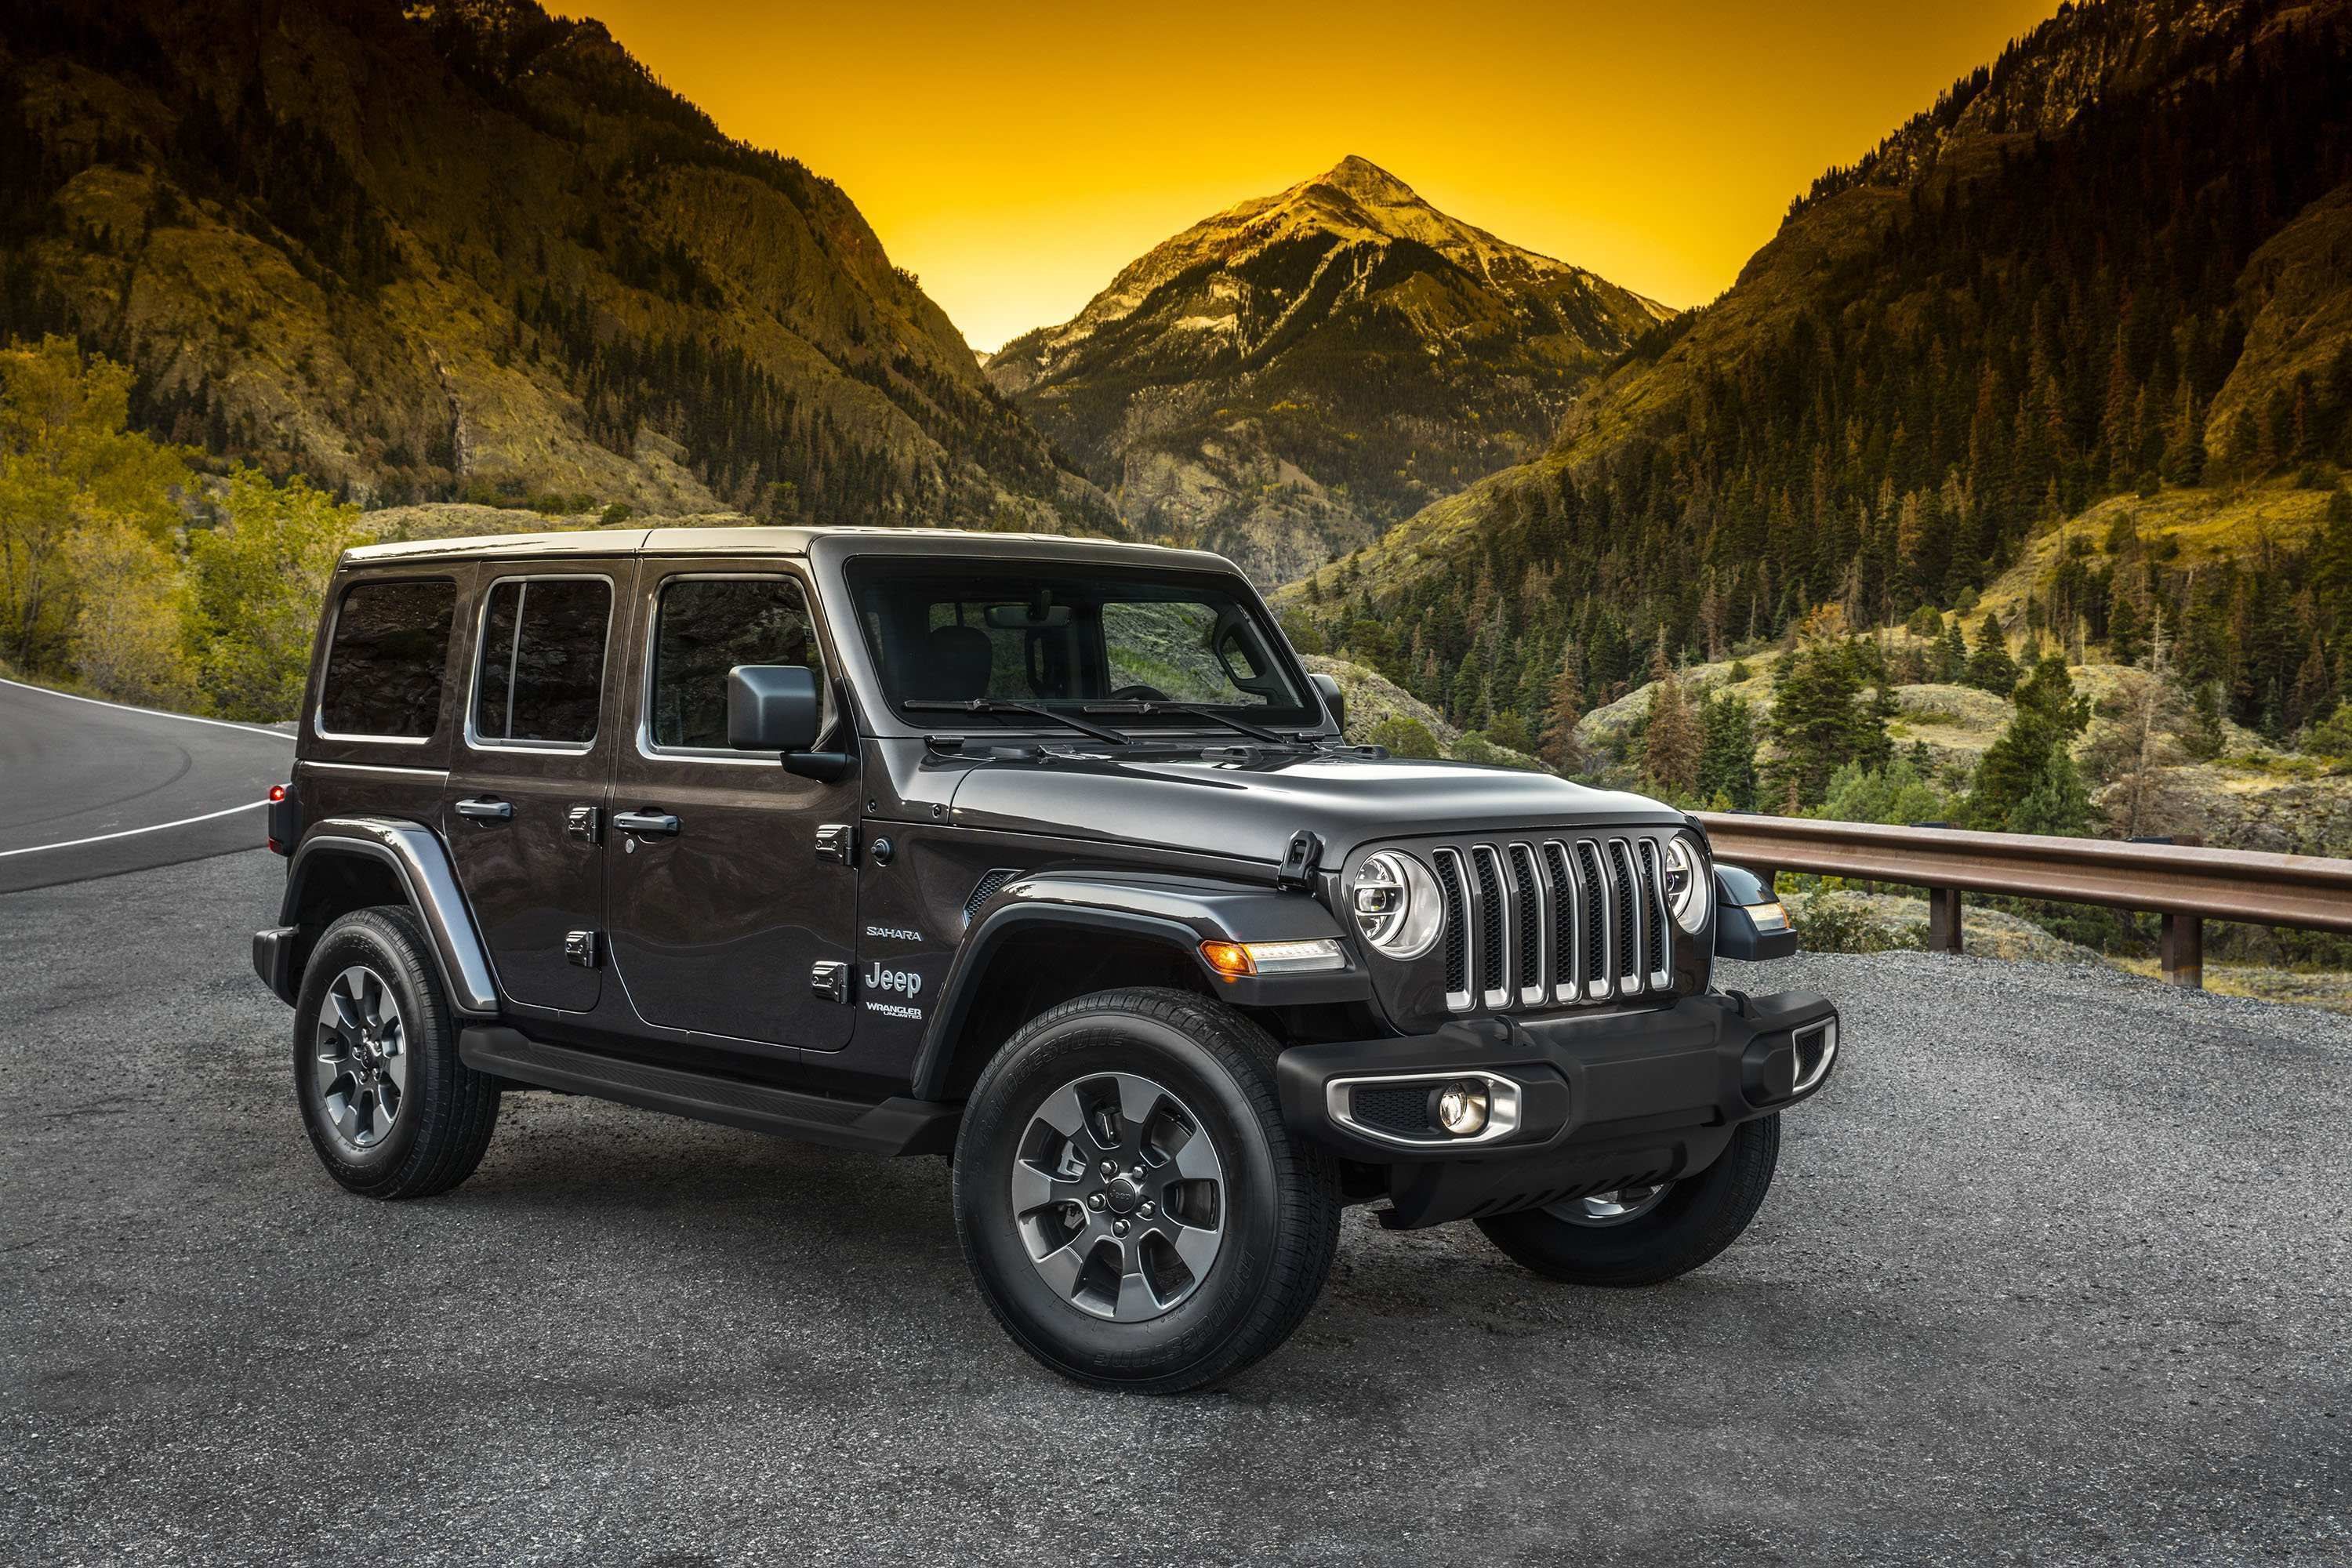 46 New 2020 Jeep Patriot Release